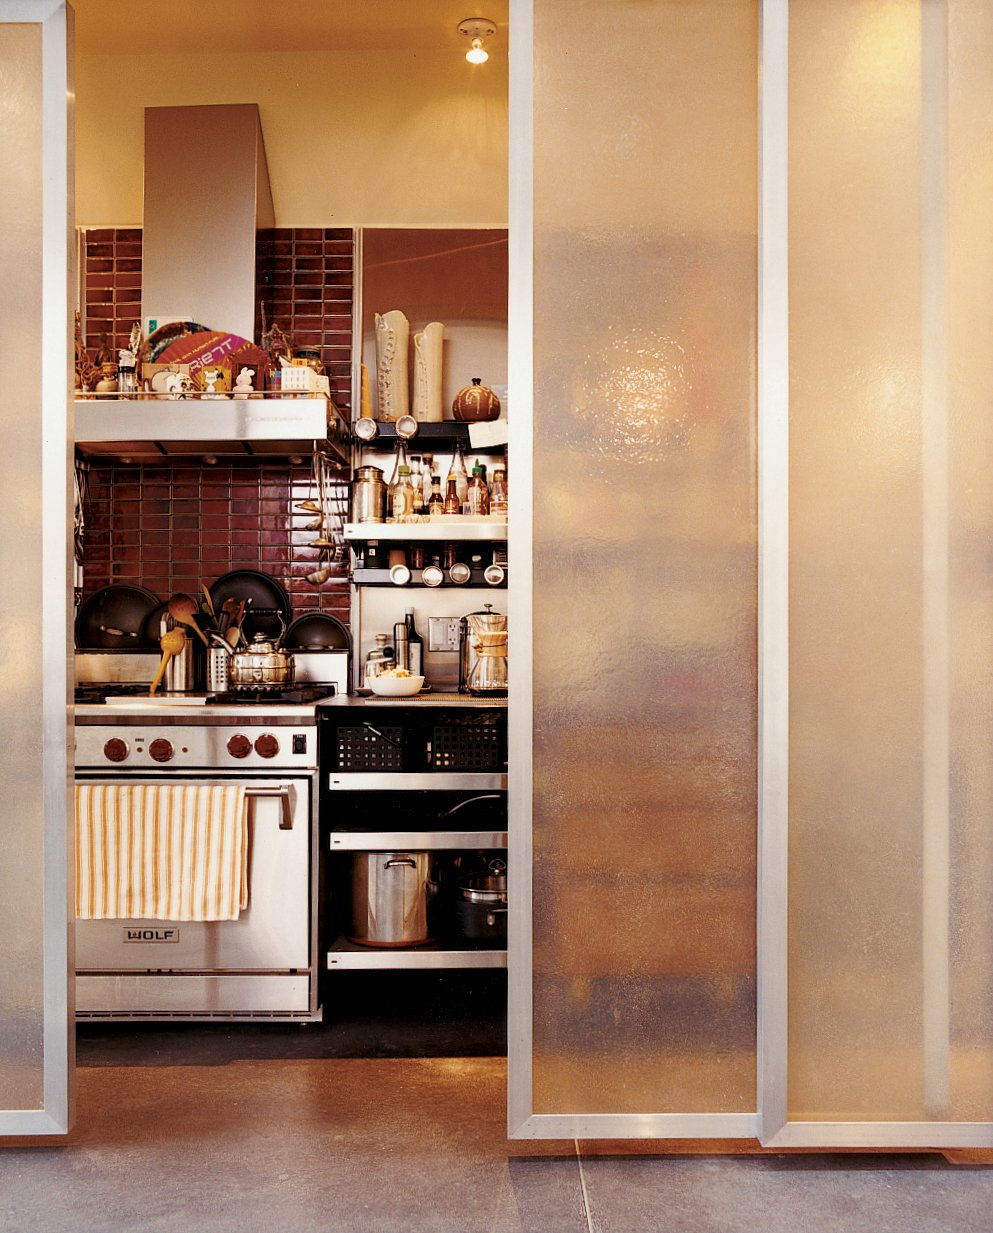 The kitchen and Baker's home office, which has artwork and inspiration pinned above the desk, are aligned behind sliding fiberglass-and-bamboo shoji screens. Devoid of cabinetry, the kitchen is fitted out with industrial cantilevered shelving from E-Z Shelving Systems in Kansas City. The red tiles behind the stove are from Heath Ceramics.  Photo 5 of 9 in Mission Statement